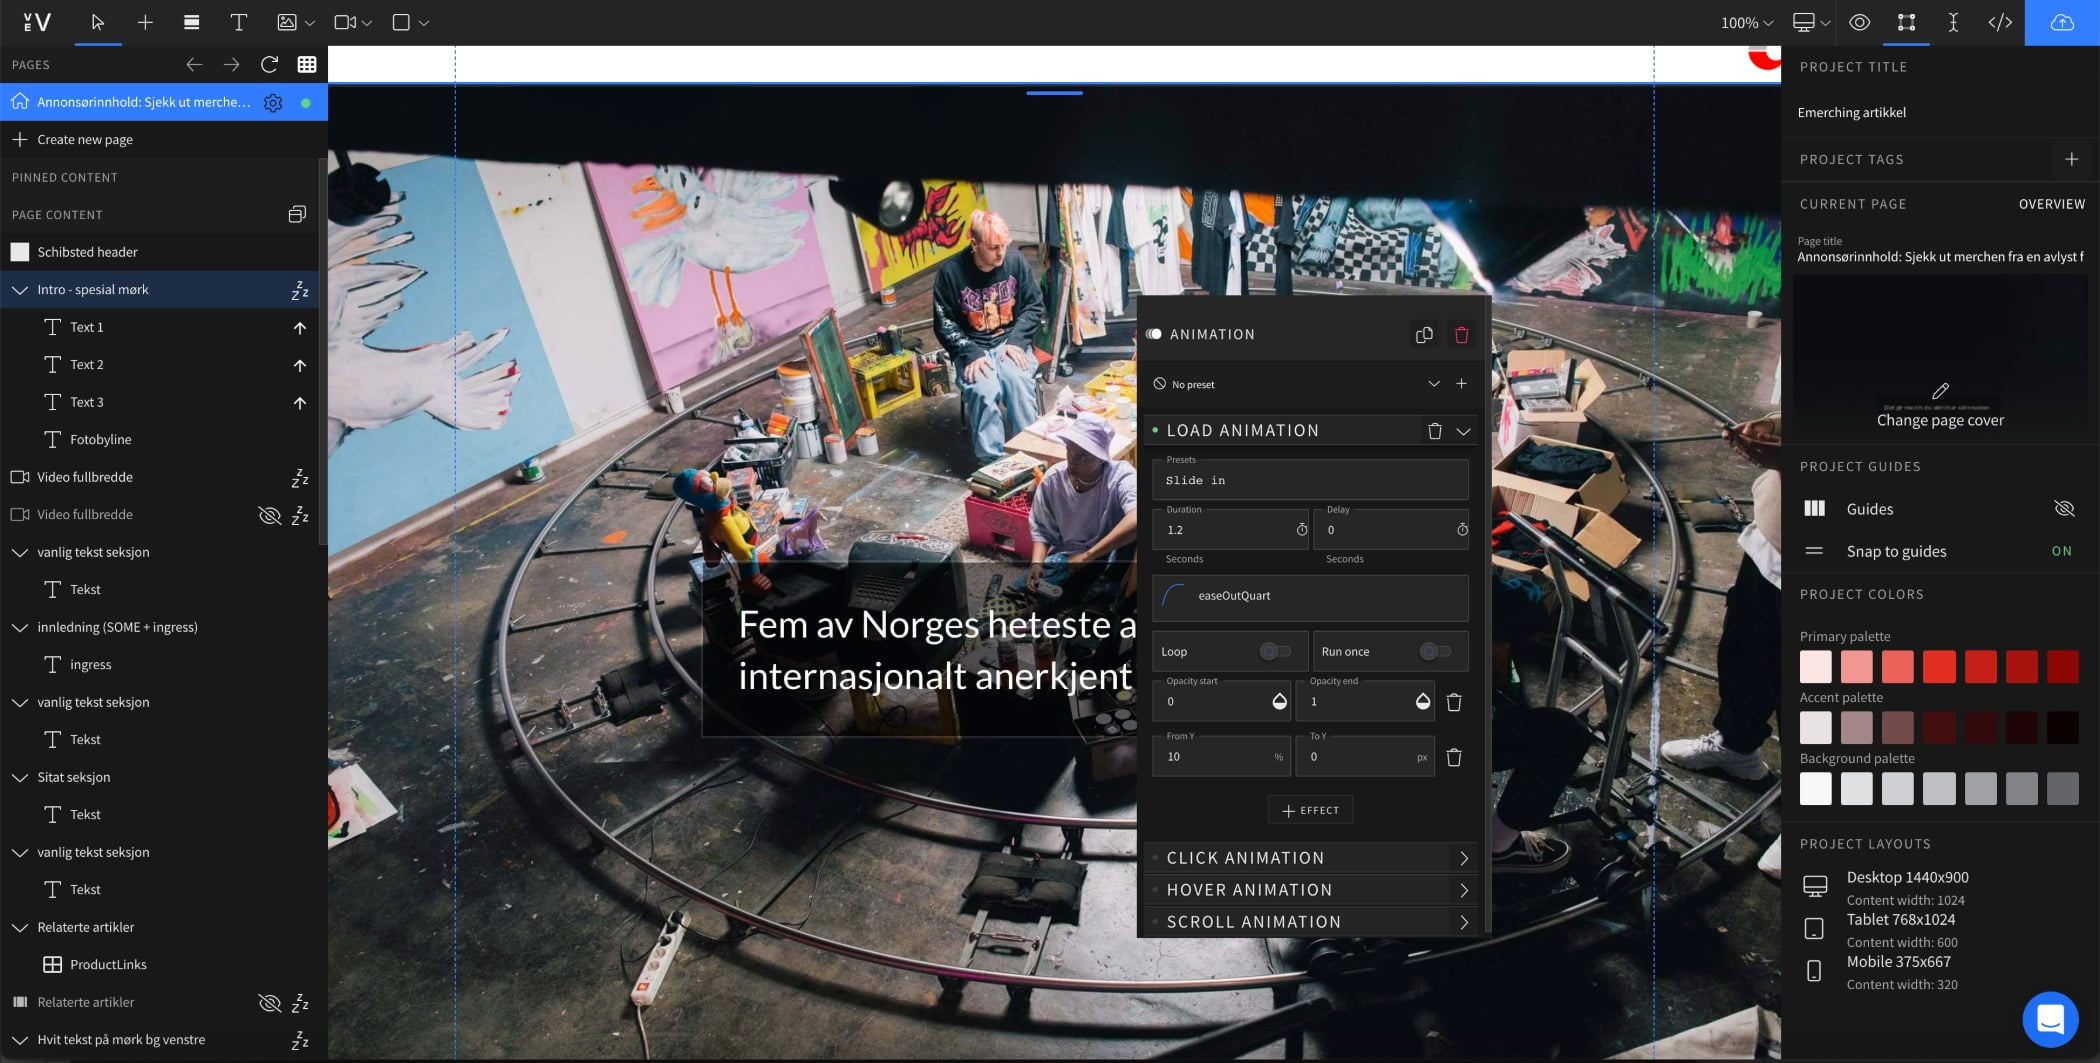 Design Editor view of large image of artist studio with scrolling text